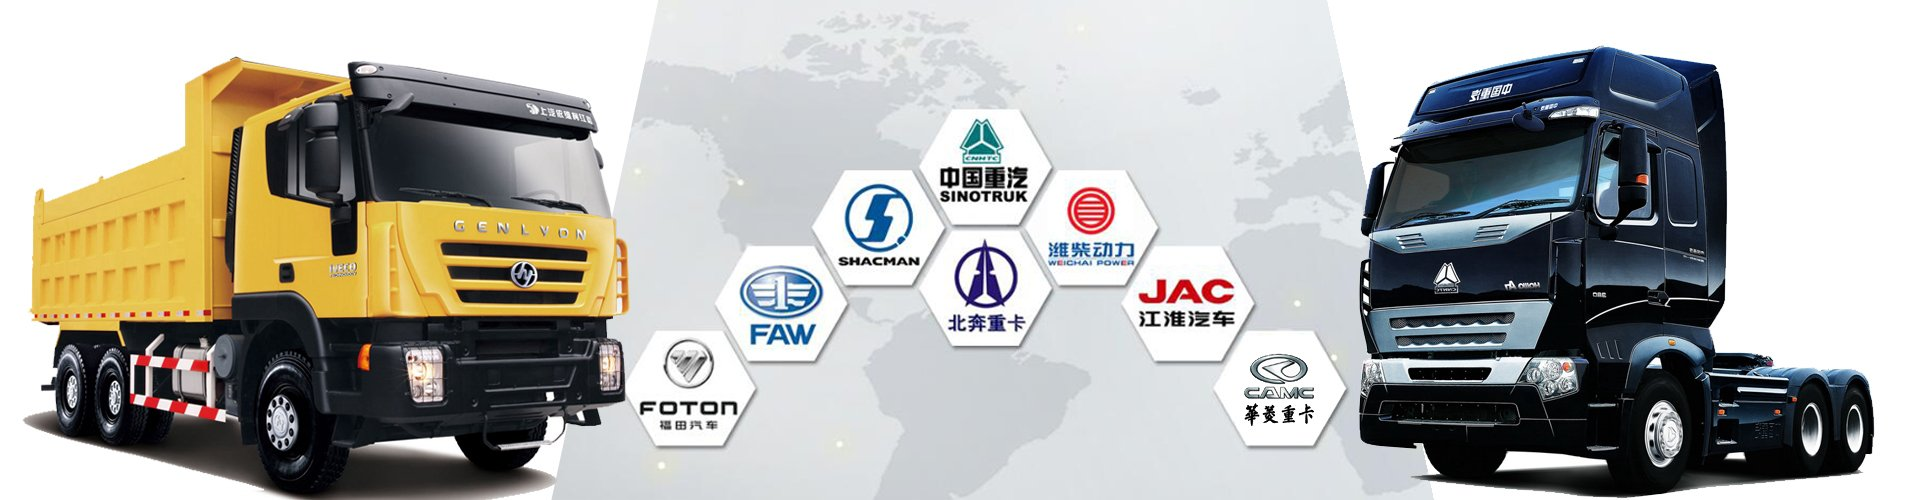 SPARE-PARTS-FOR-CHINA-TRUCK-Banner-2